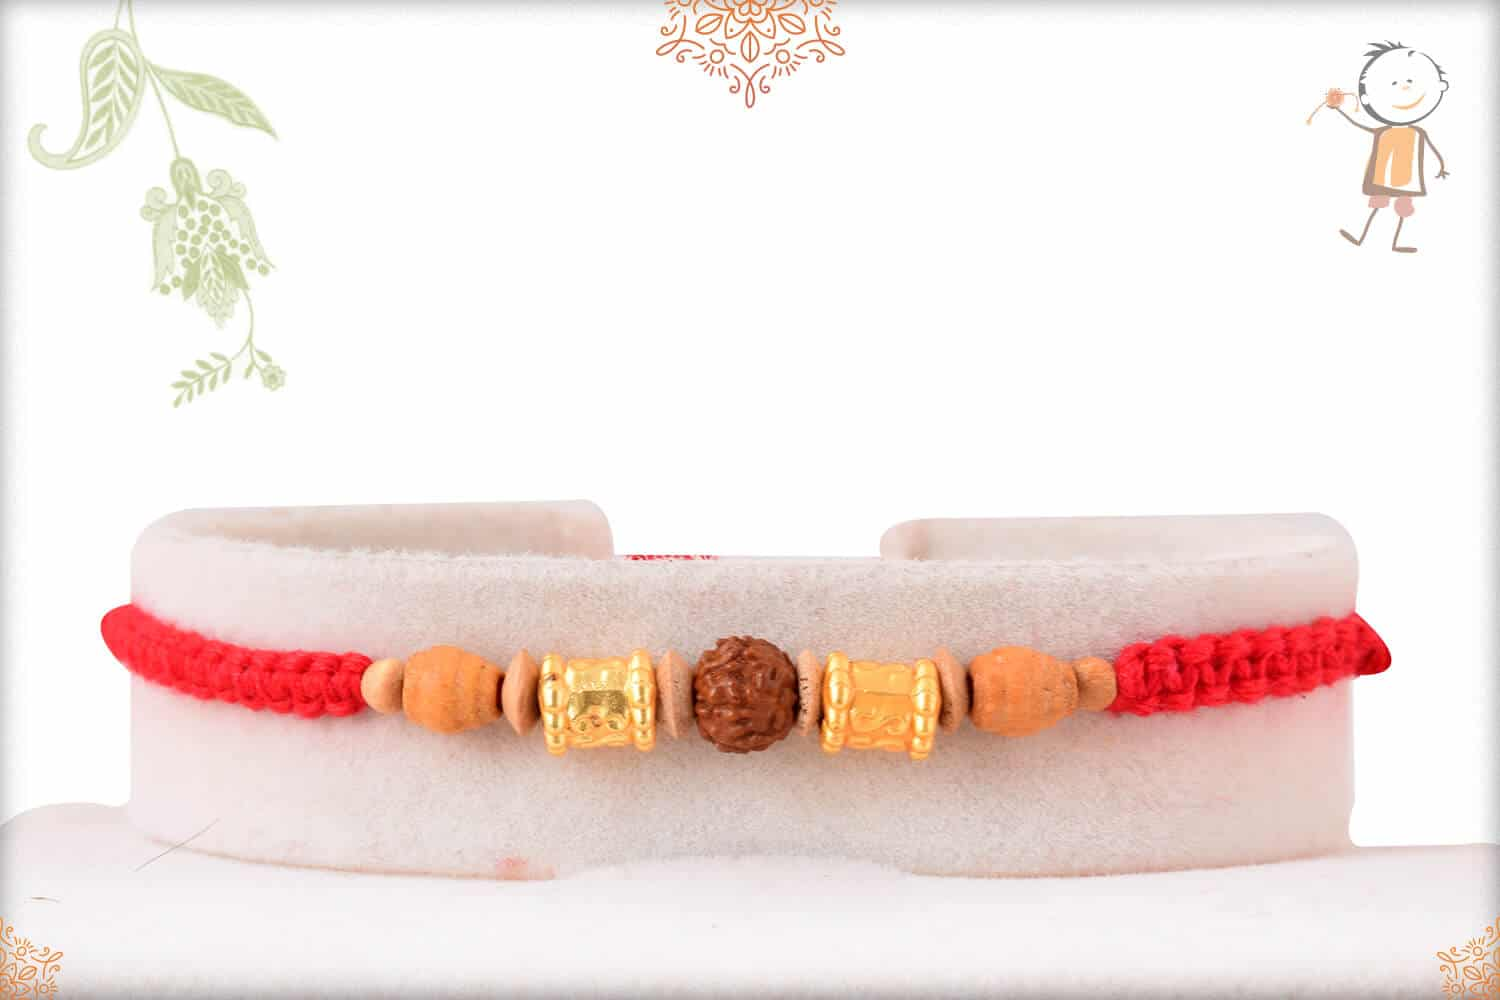 Rudraksh and Sandalwood Bead Rakhi with Uniquely Knotted Thread 1